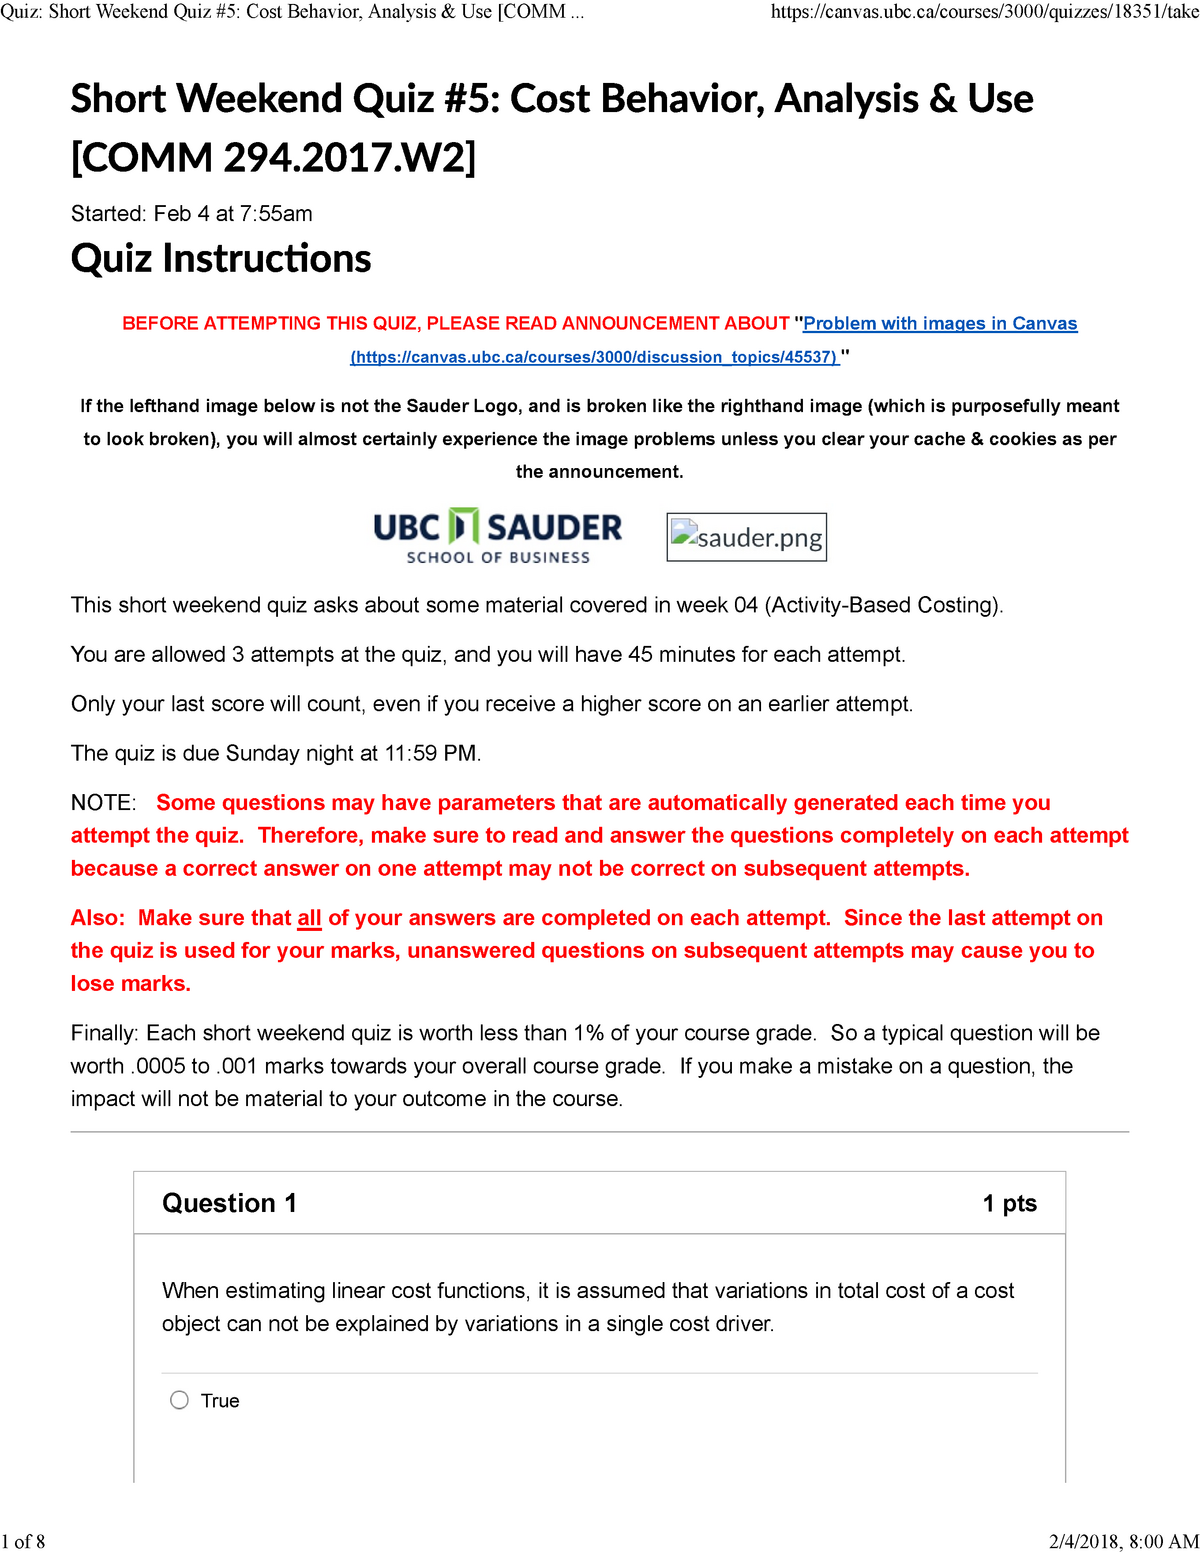 Quiz 5 - n/a - COMM 294: Managerial Accounting - StuDocu